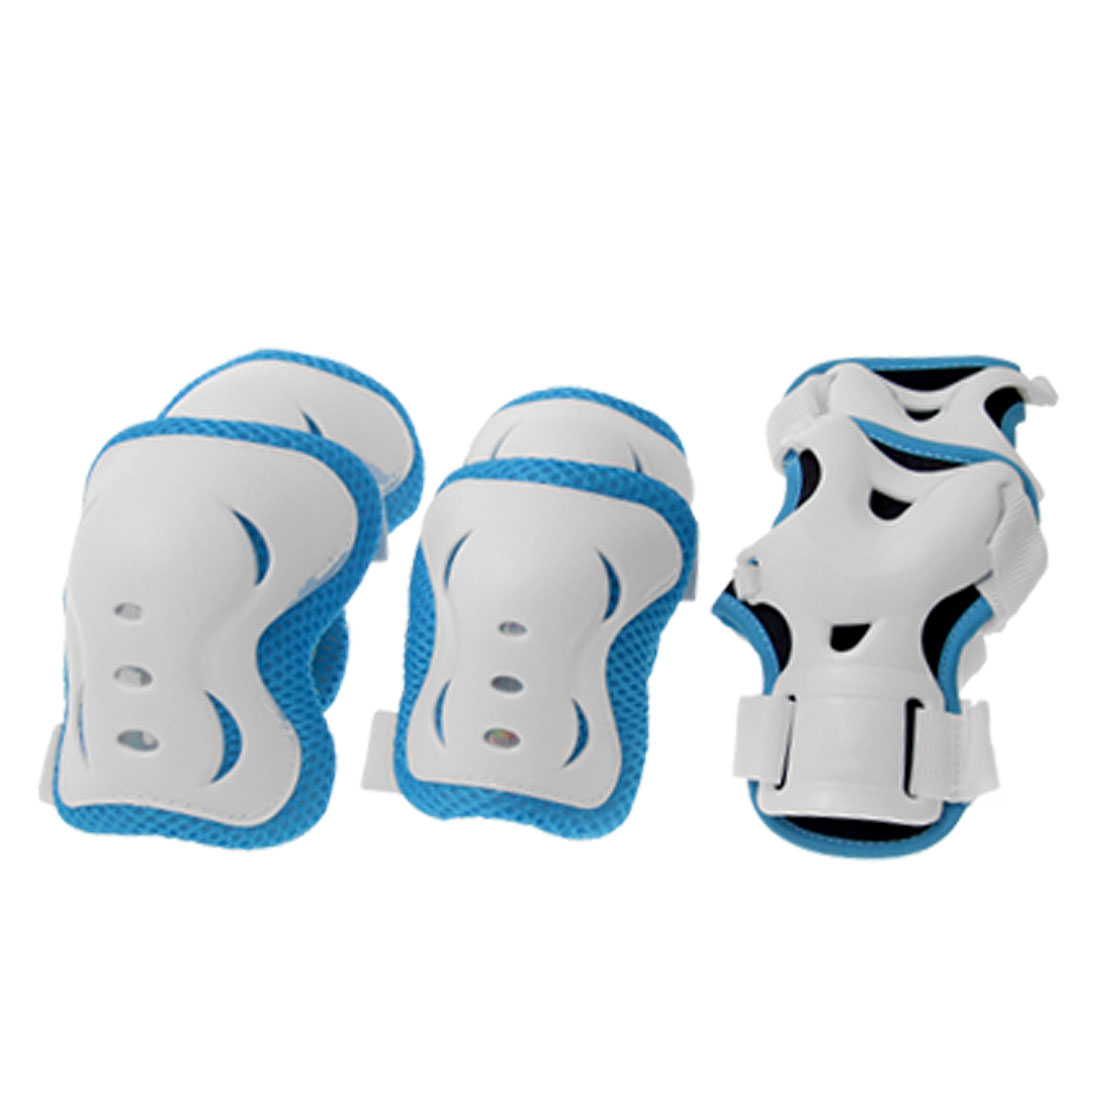 Set Sport Protector Children Elbow Knee Wrist Support - image 1 de 1